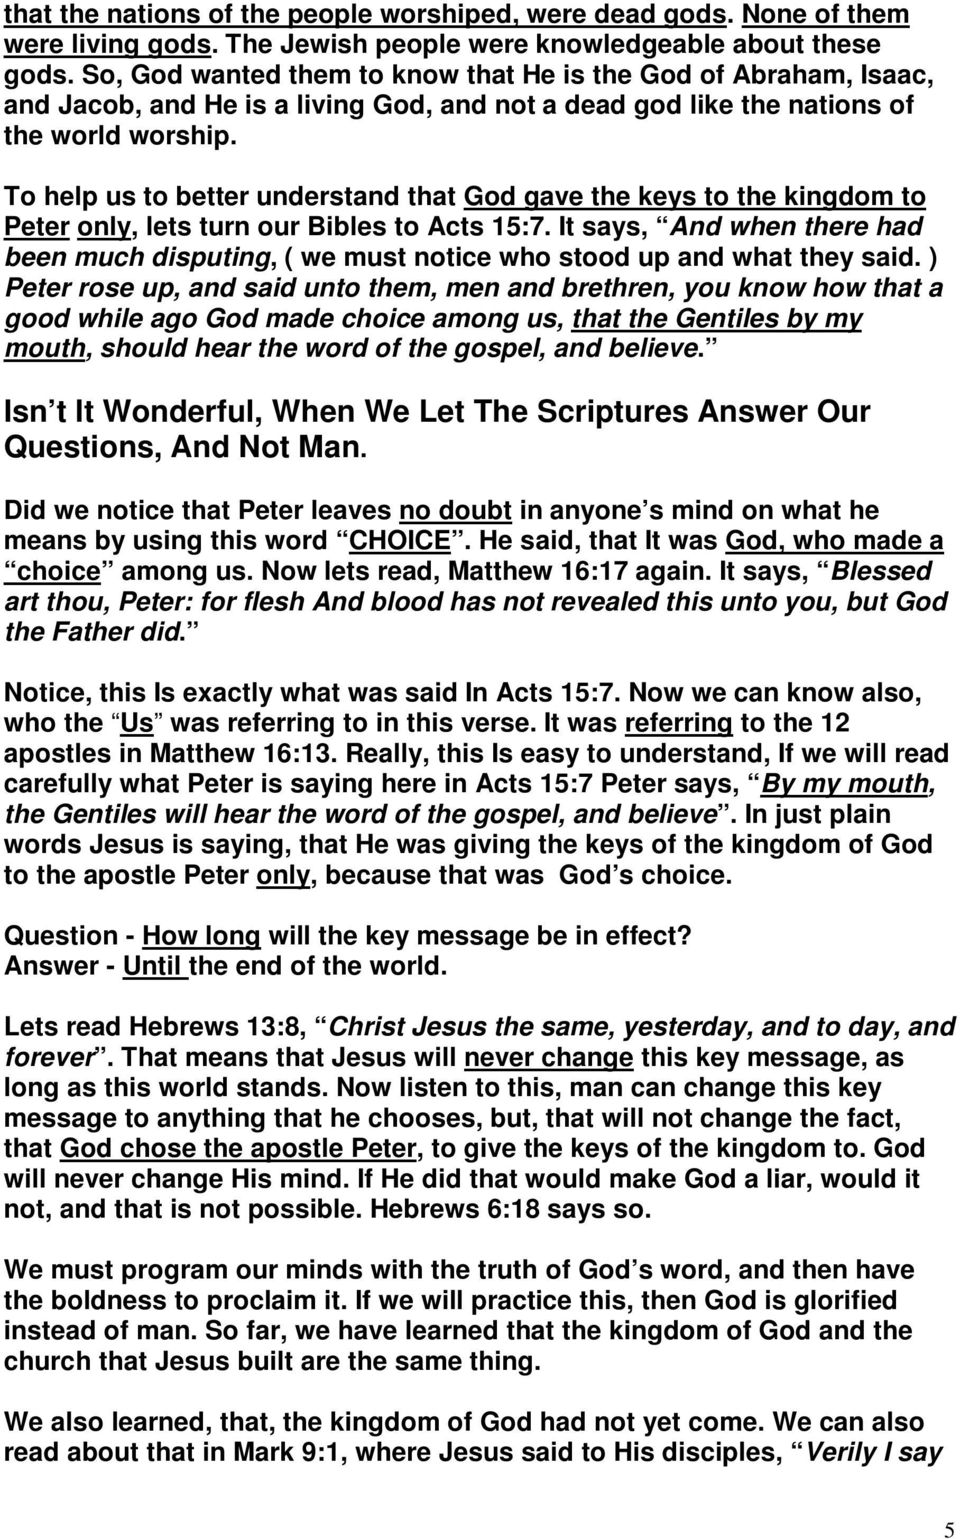 To help us to better understand that God gave the keys to the kingdom to Peter only, lets turn our Bibles to Acts 15:7.